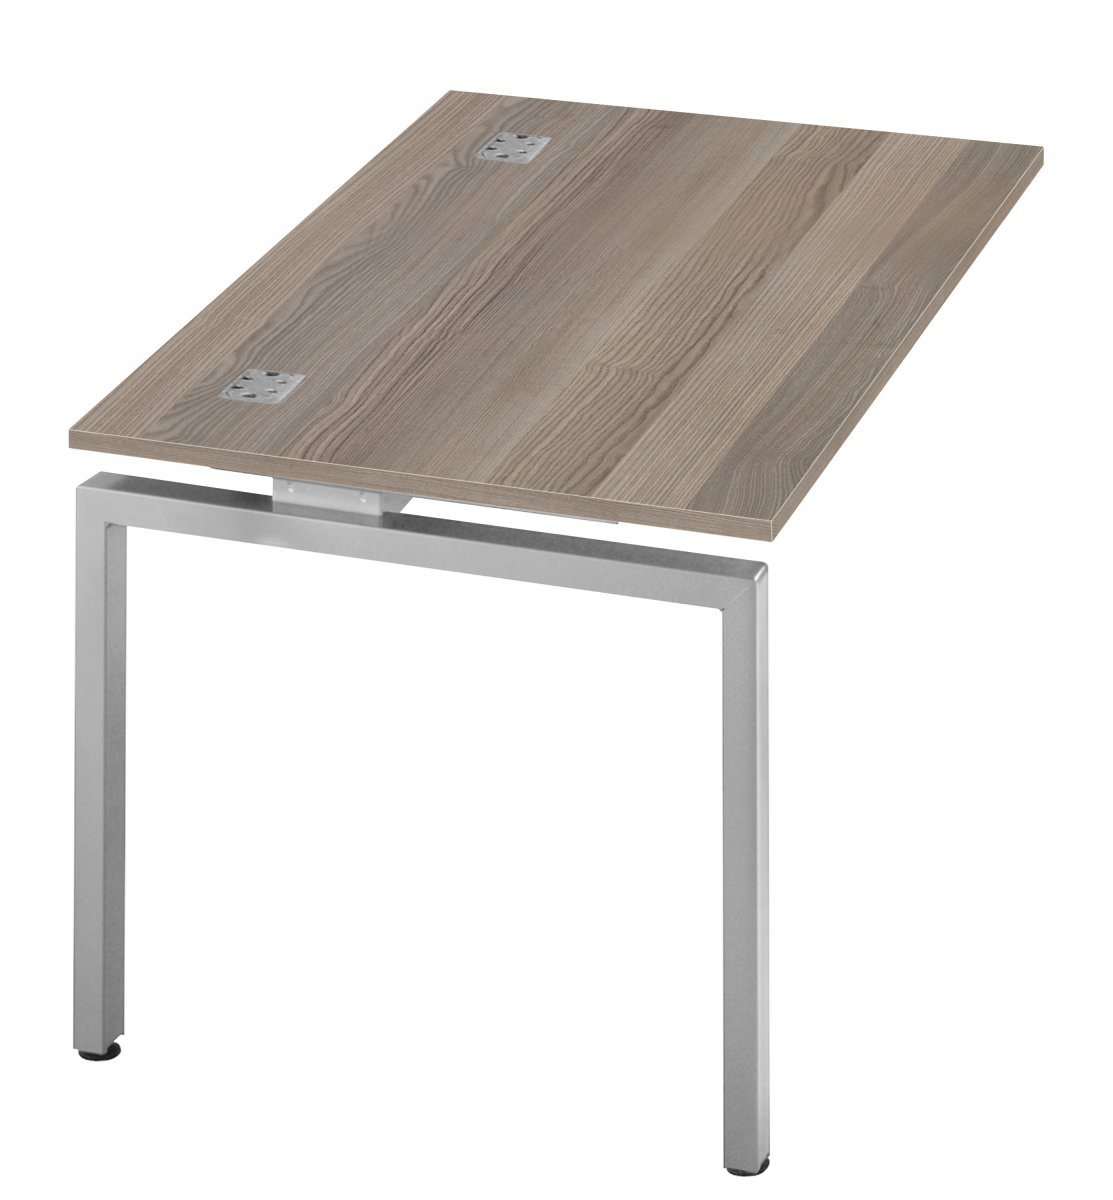 Fraction Bench Single 140 Extension Unit Workstation - Grey Oak